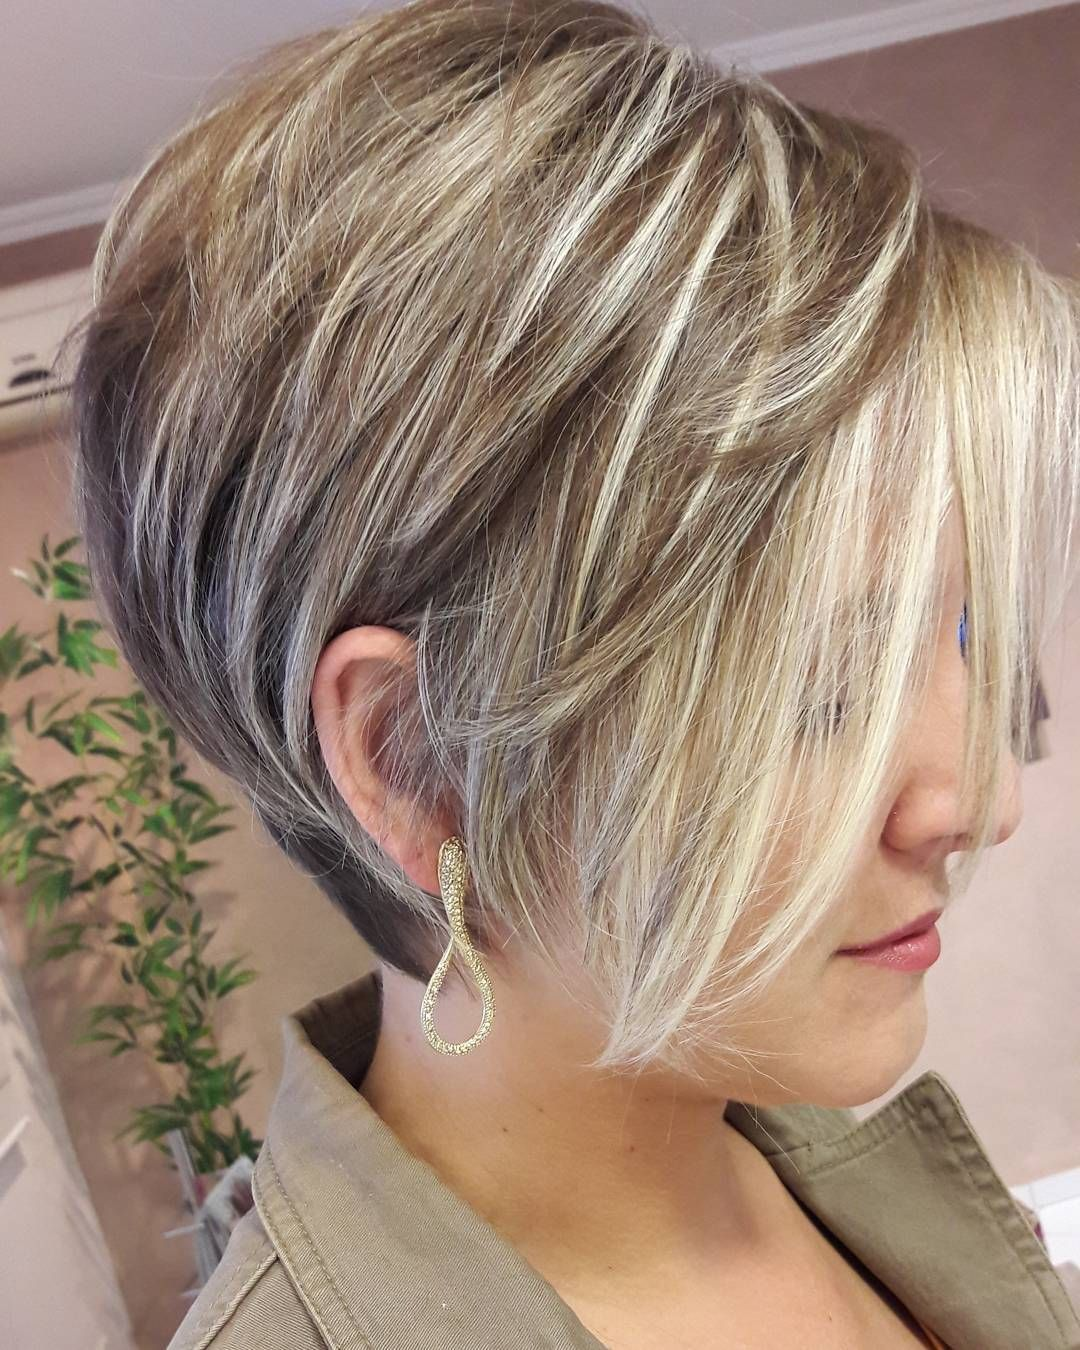 Pin by patty barry donohue on beauty in pinterest hair